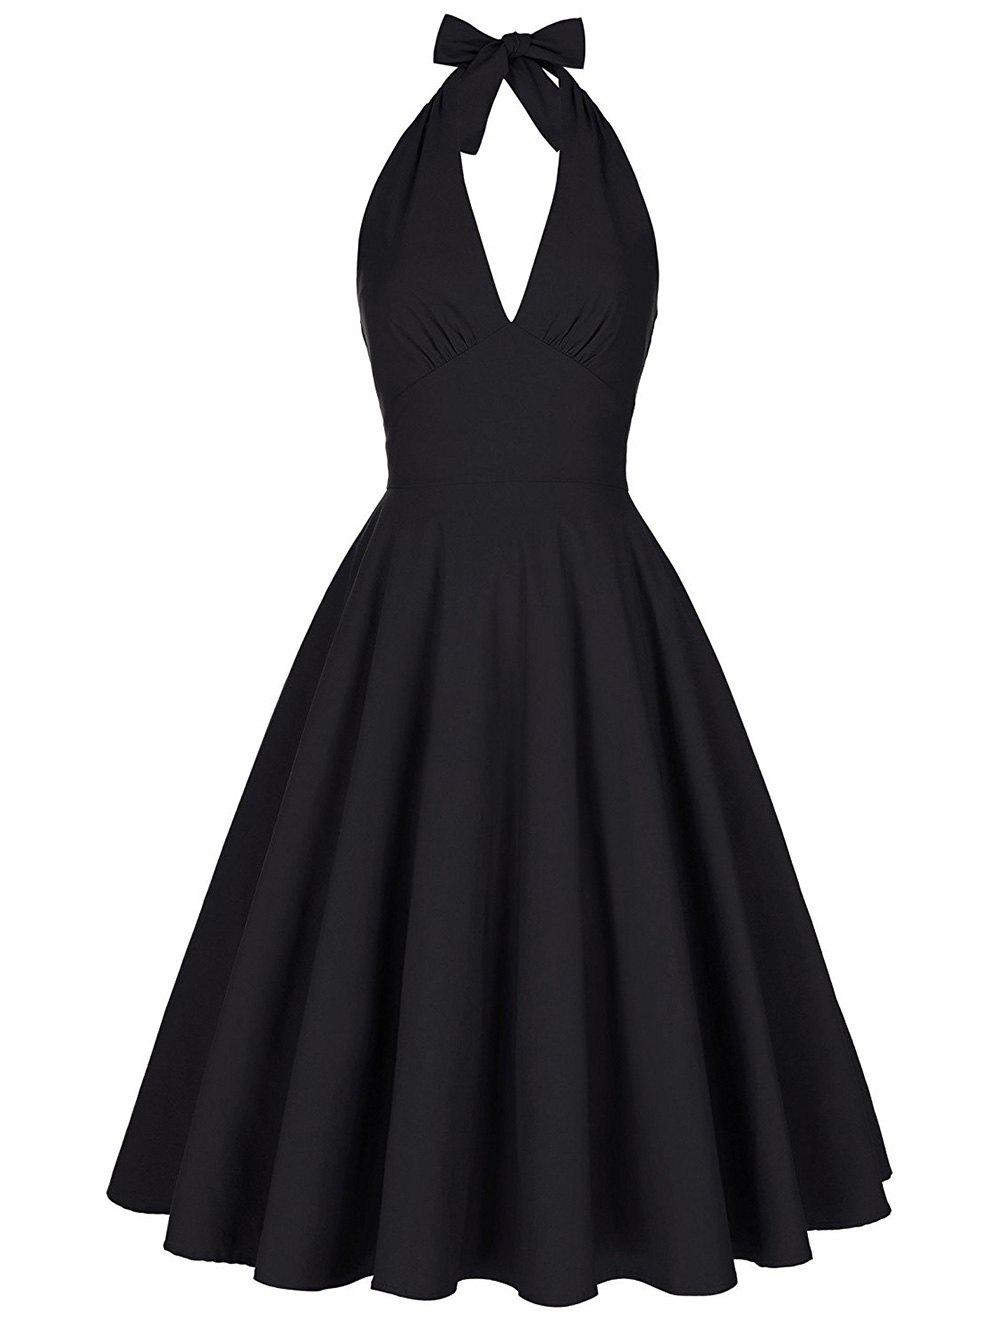 Halter Low Back Plunge Work Christmas Party DressWOMEN<br><br>Size: 2XL; Color: BLACK; Style: Vintage; Material: Cotton,Cotton Blend,Polyester; Silhouette: Ball Gown; Dresses Length: Knee-Length; Neckline: Halter; Sleeve Length: Sleeveless; Embellishment: Backless; Pattern Type: Solid; With Belt: No; Season: Fall,Spring,Summer; Weight: 0.4150kg; Package Contents: 1 x Dress;